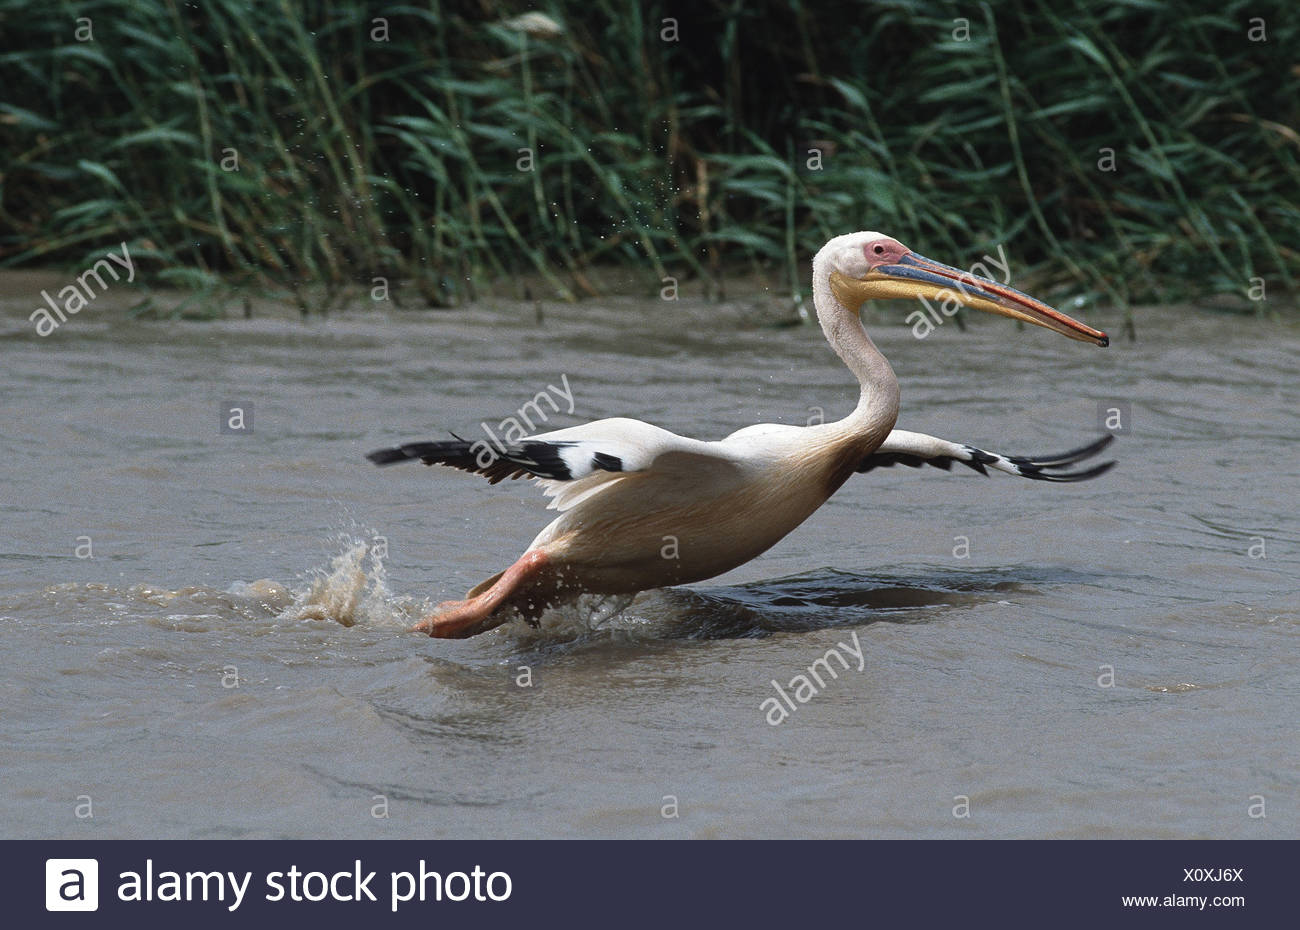 eastern white pelican (Pelecanus onocrotalus), departing from water, Senegal, Djoudj NP - Stock Image